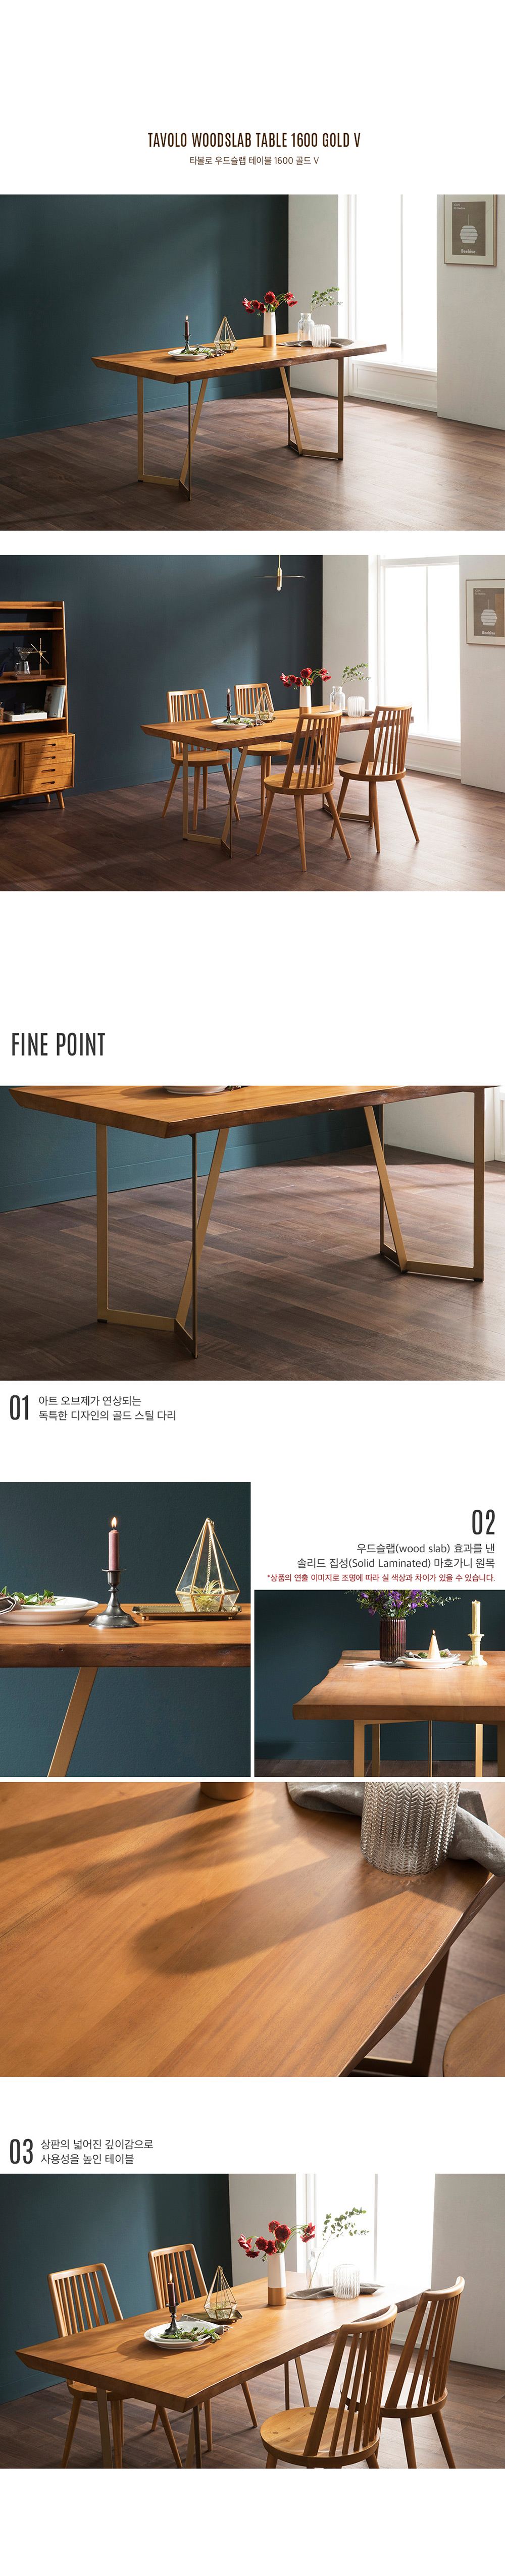 Tavolo_Scandinavian_Natural_Woodslab_Table_with_X_Legs_1600_(Gold)_Singapore_Dimensions_by_born_in_colour